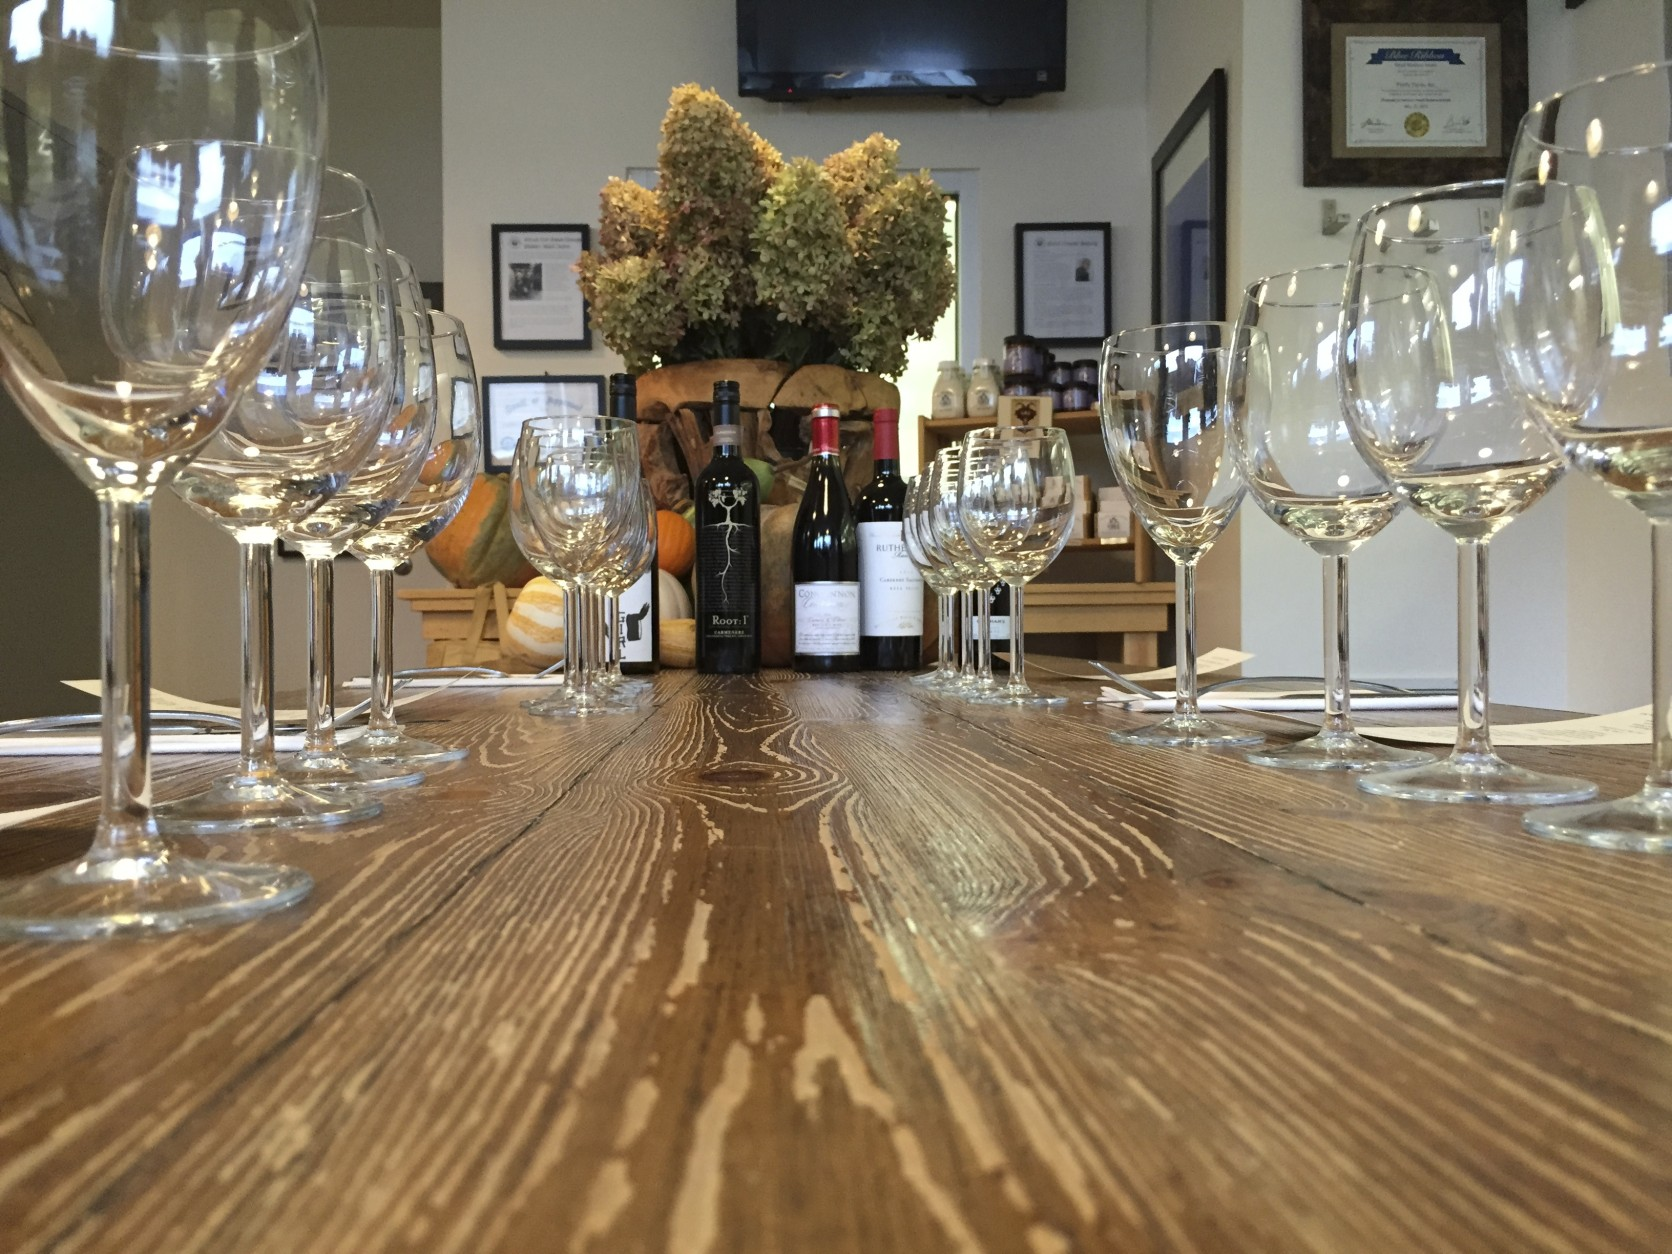 The table is set for a wine and cheese tasting at Firefly Farms Creamery. (WTOP/Kate Ryan)